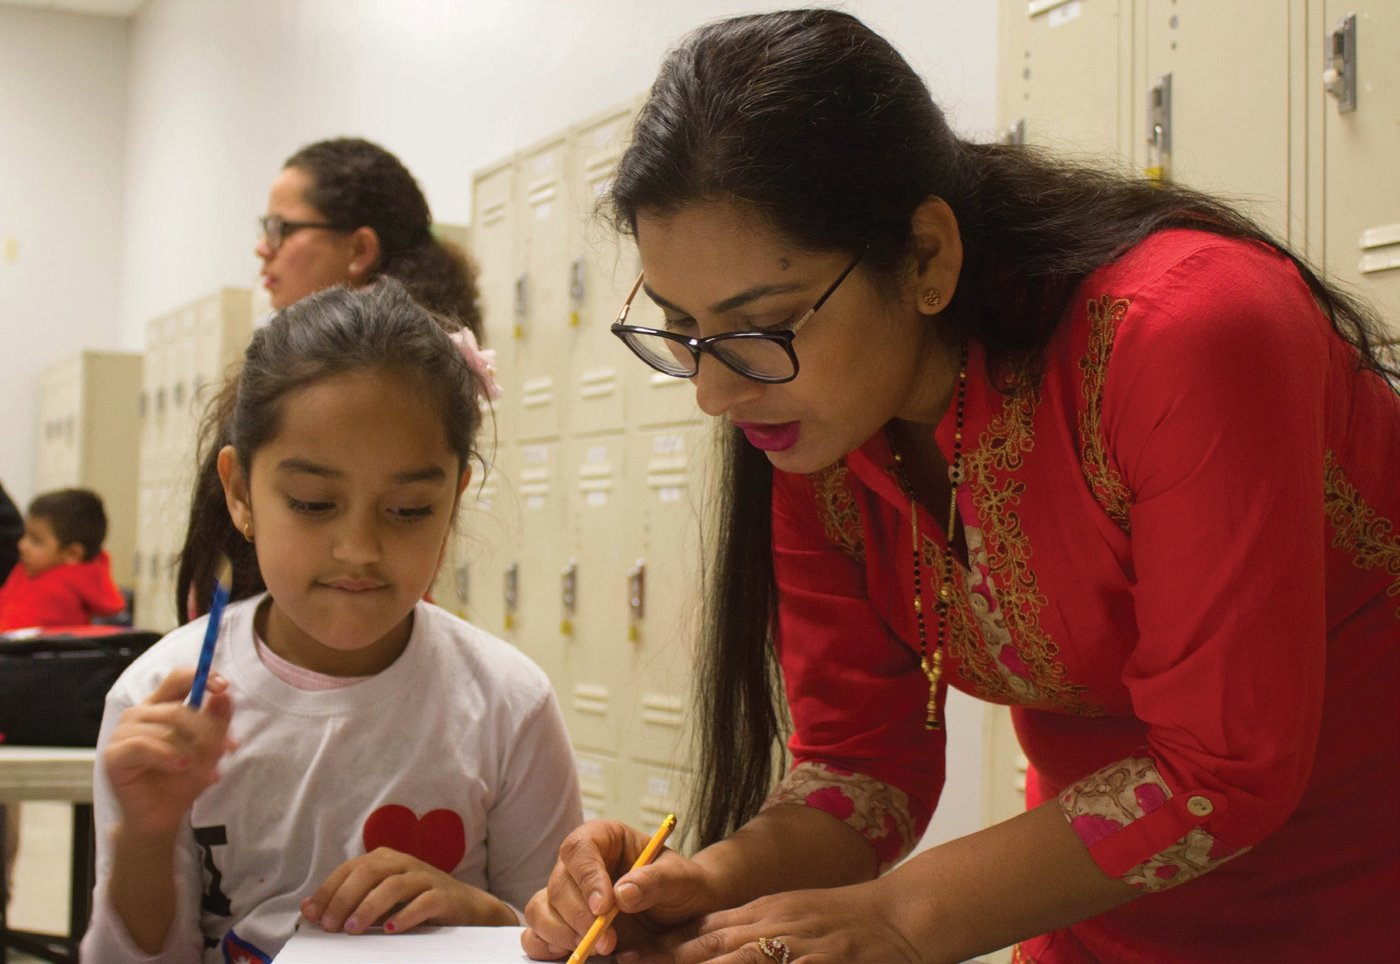 The Nepalese Language School was created by Lions to help children learn about their culture and build confidence. Volunteer teacher Sabitri Joshi, right, helps Sofie Ghimire learn the Nepalese alphabet. Photo by Katya Cengel.